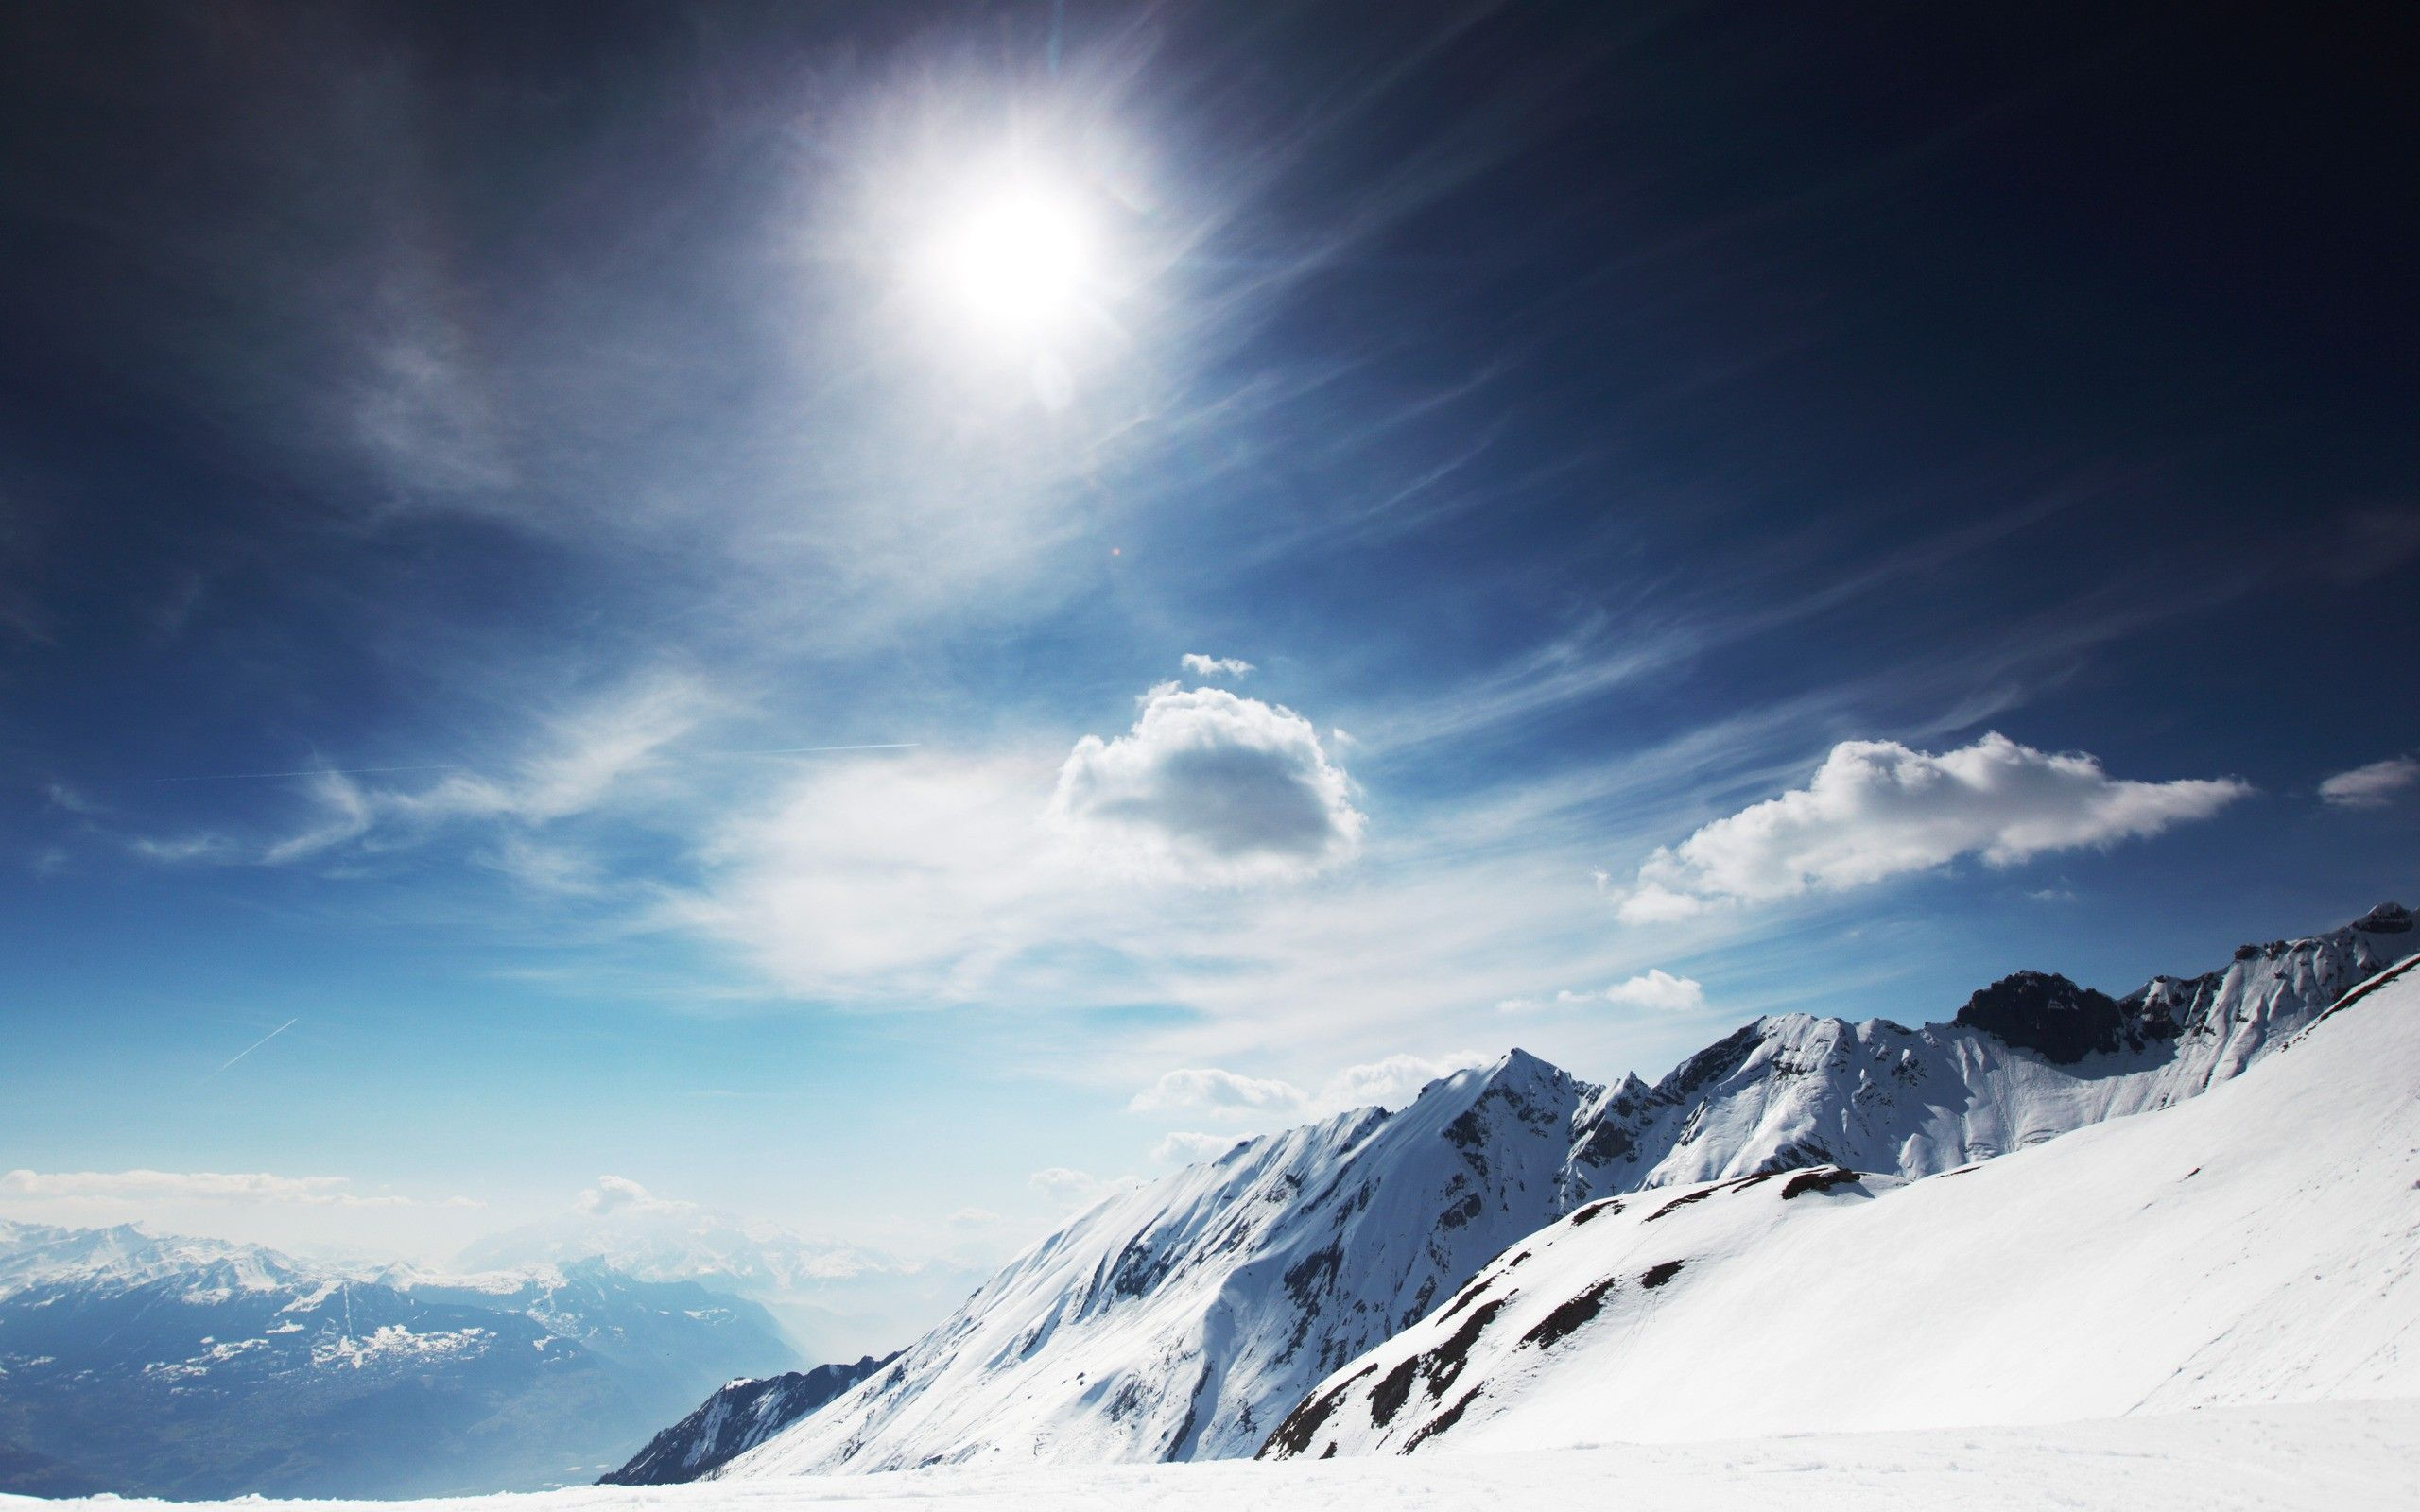 HD Snowy Mountain Wallpaper